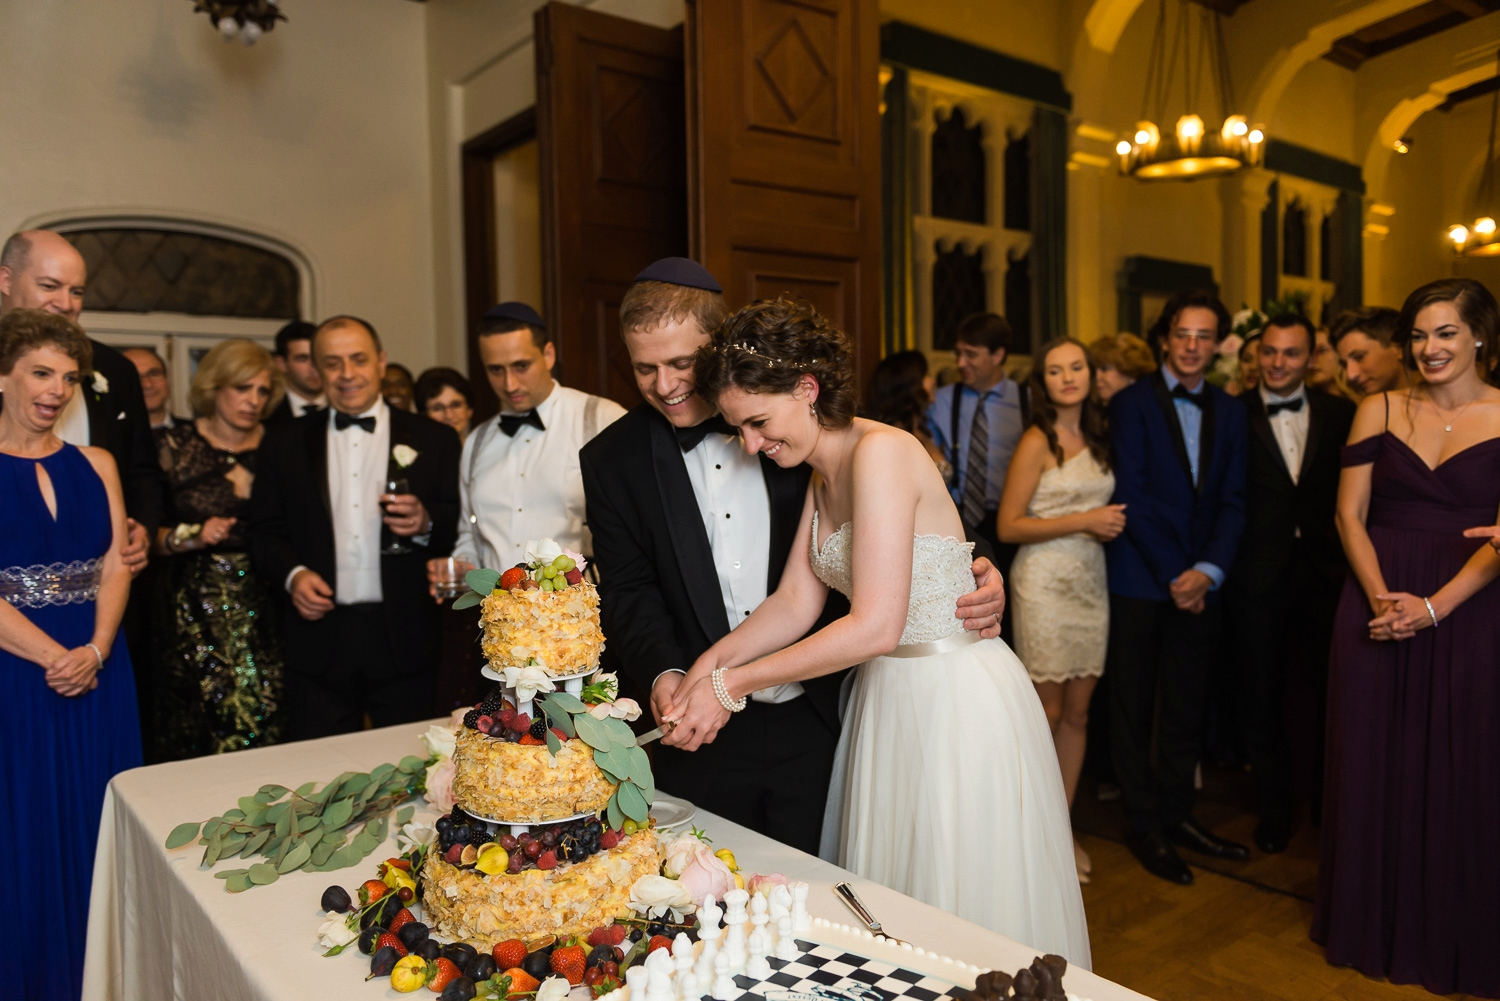 Bride and groom cutting their wedding cake in a ballroom